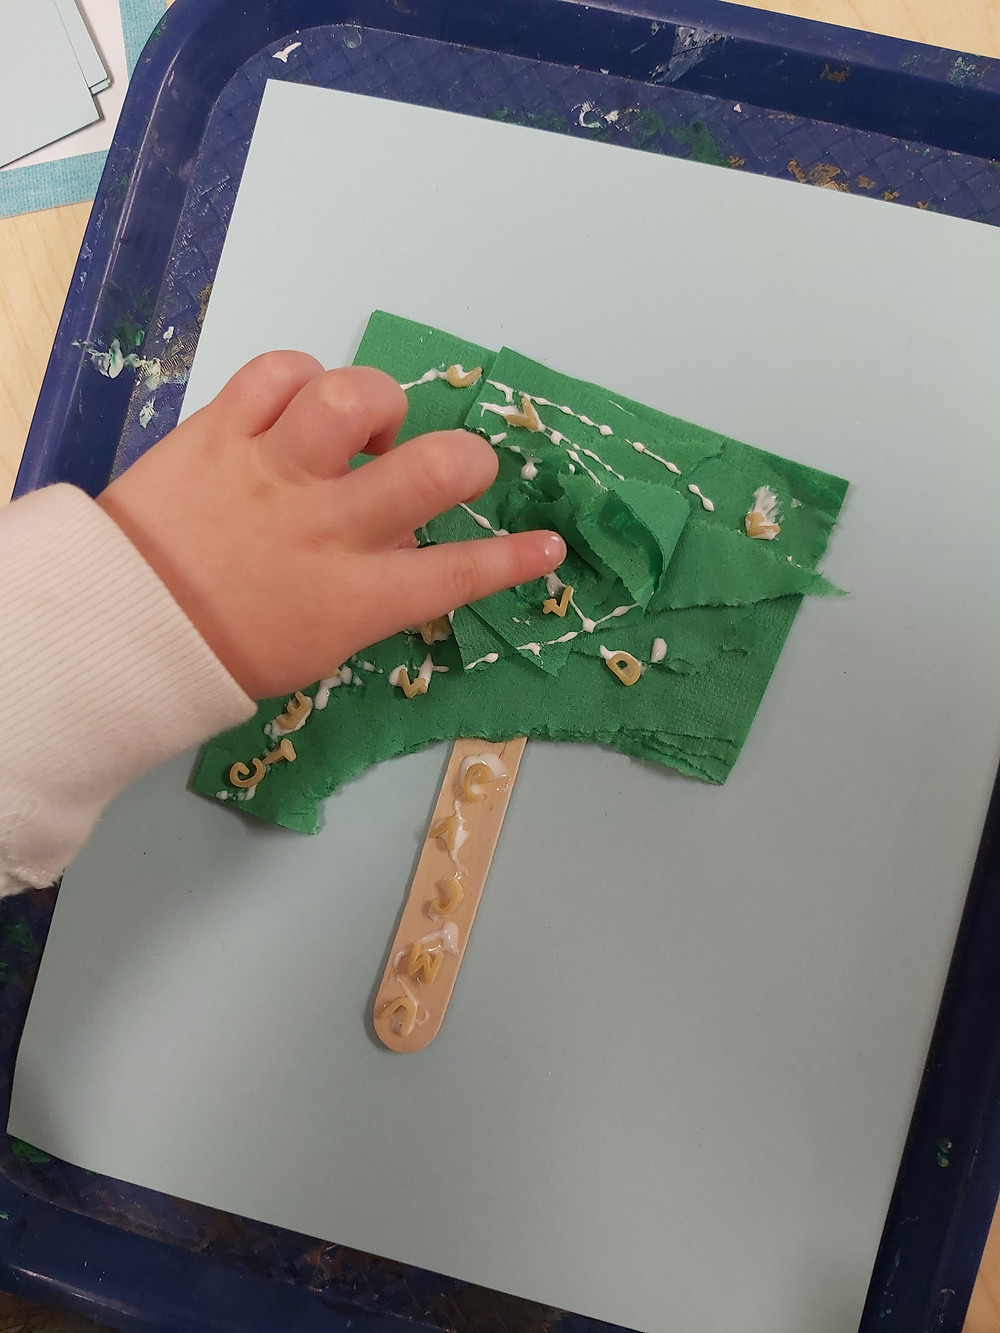 preschooler adding alphabet pasta to coconut tree craft